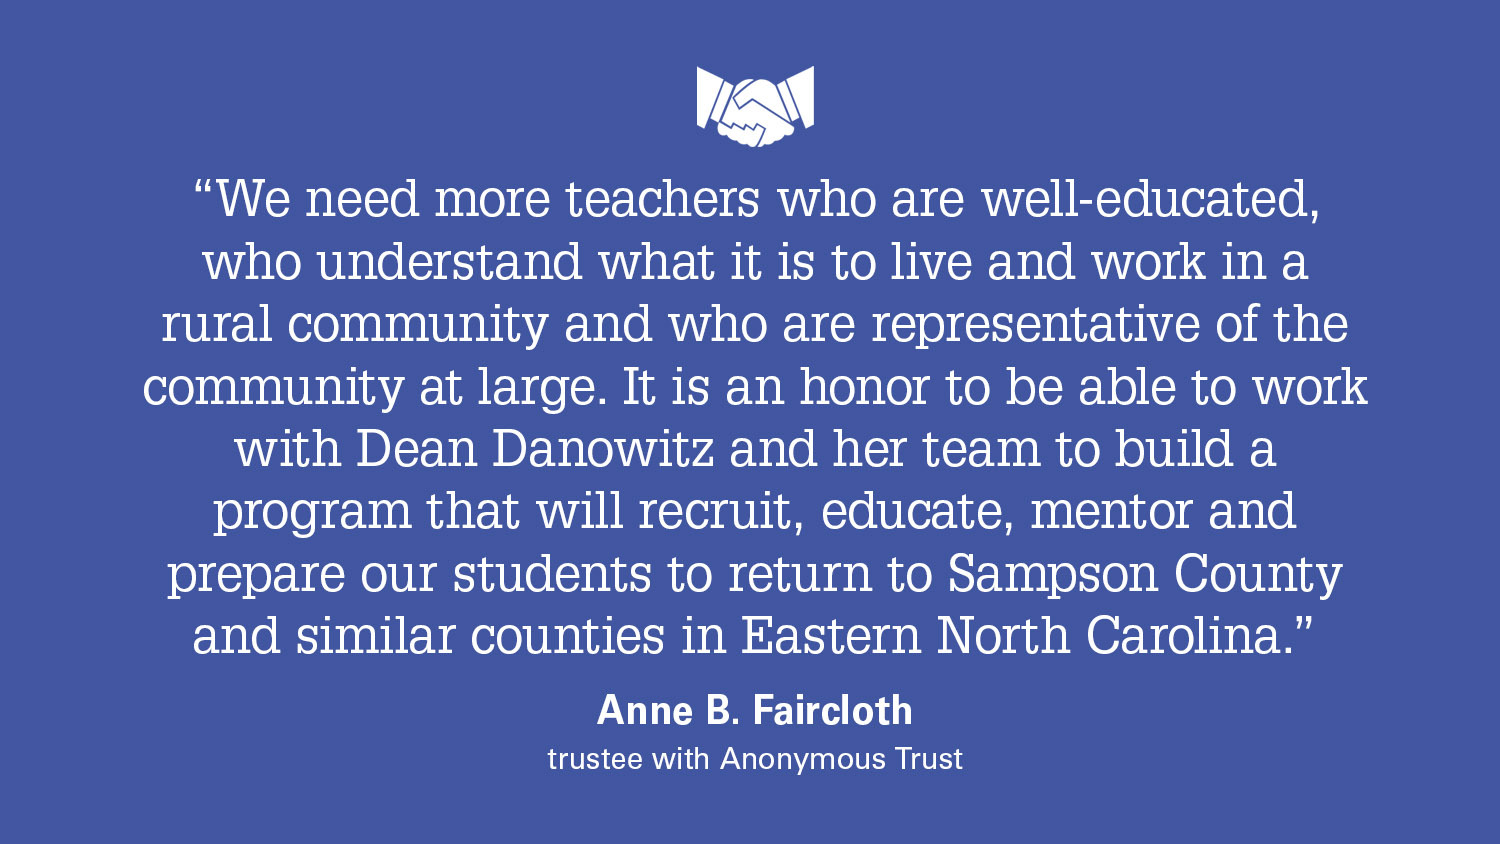 Quote from Anne B. Faircloth about the Transformational Scholar program: We need more teachers who are well-educated, who understand what it is to live and work in a rural community and who are representative of the community at large. It is an honor to be able to work with Dean Danowitz and her team to build a program that will recruit, educate, mentor and prepare our students to return to Sampson County and similar counties in Eastern North Carolina.